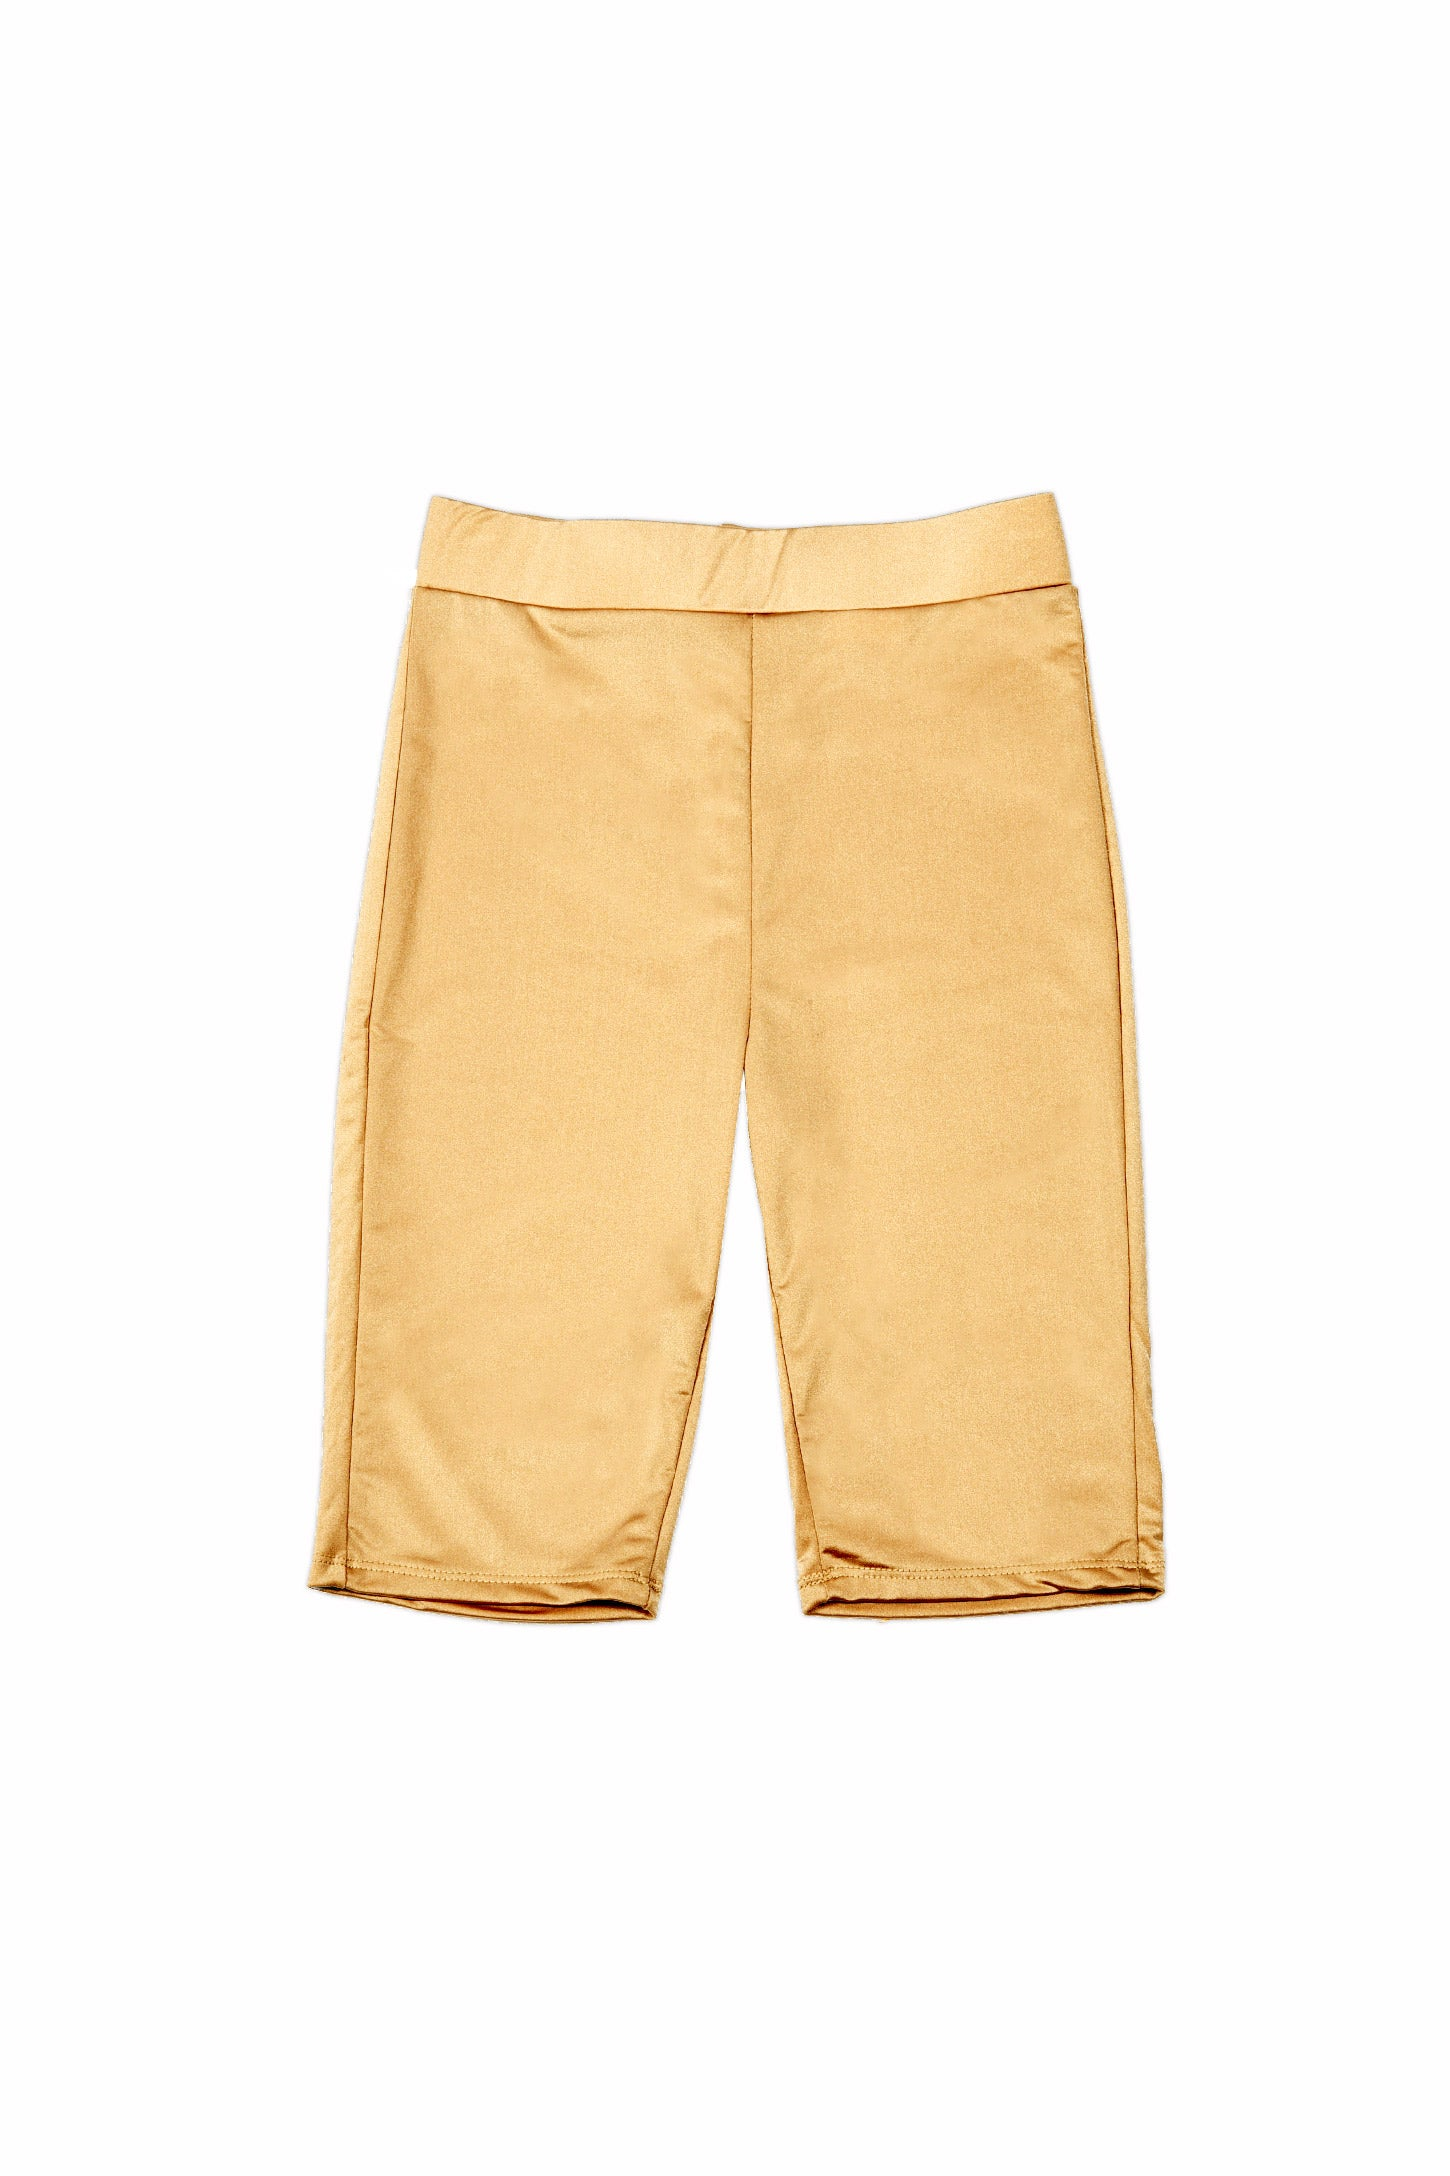 CYCLING SHORTS BEIGE